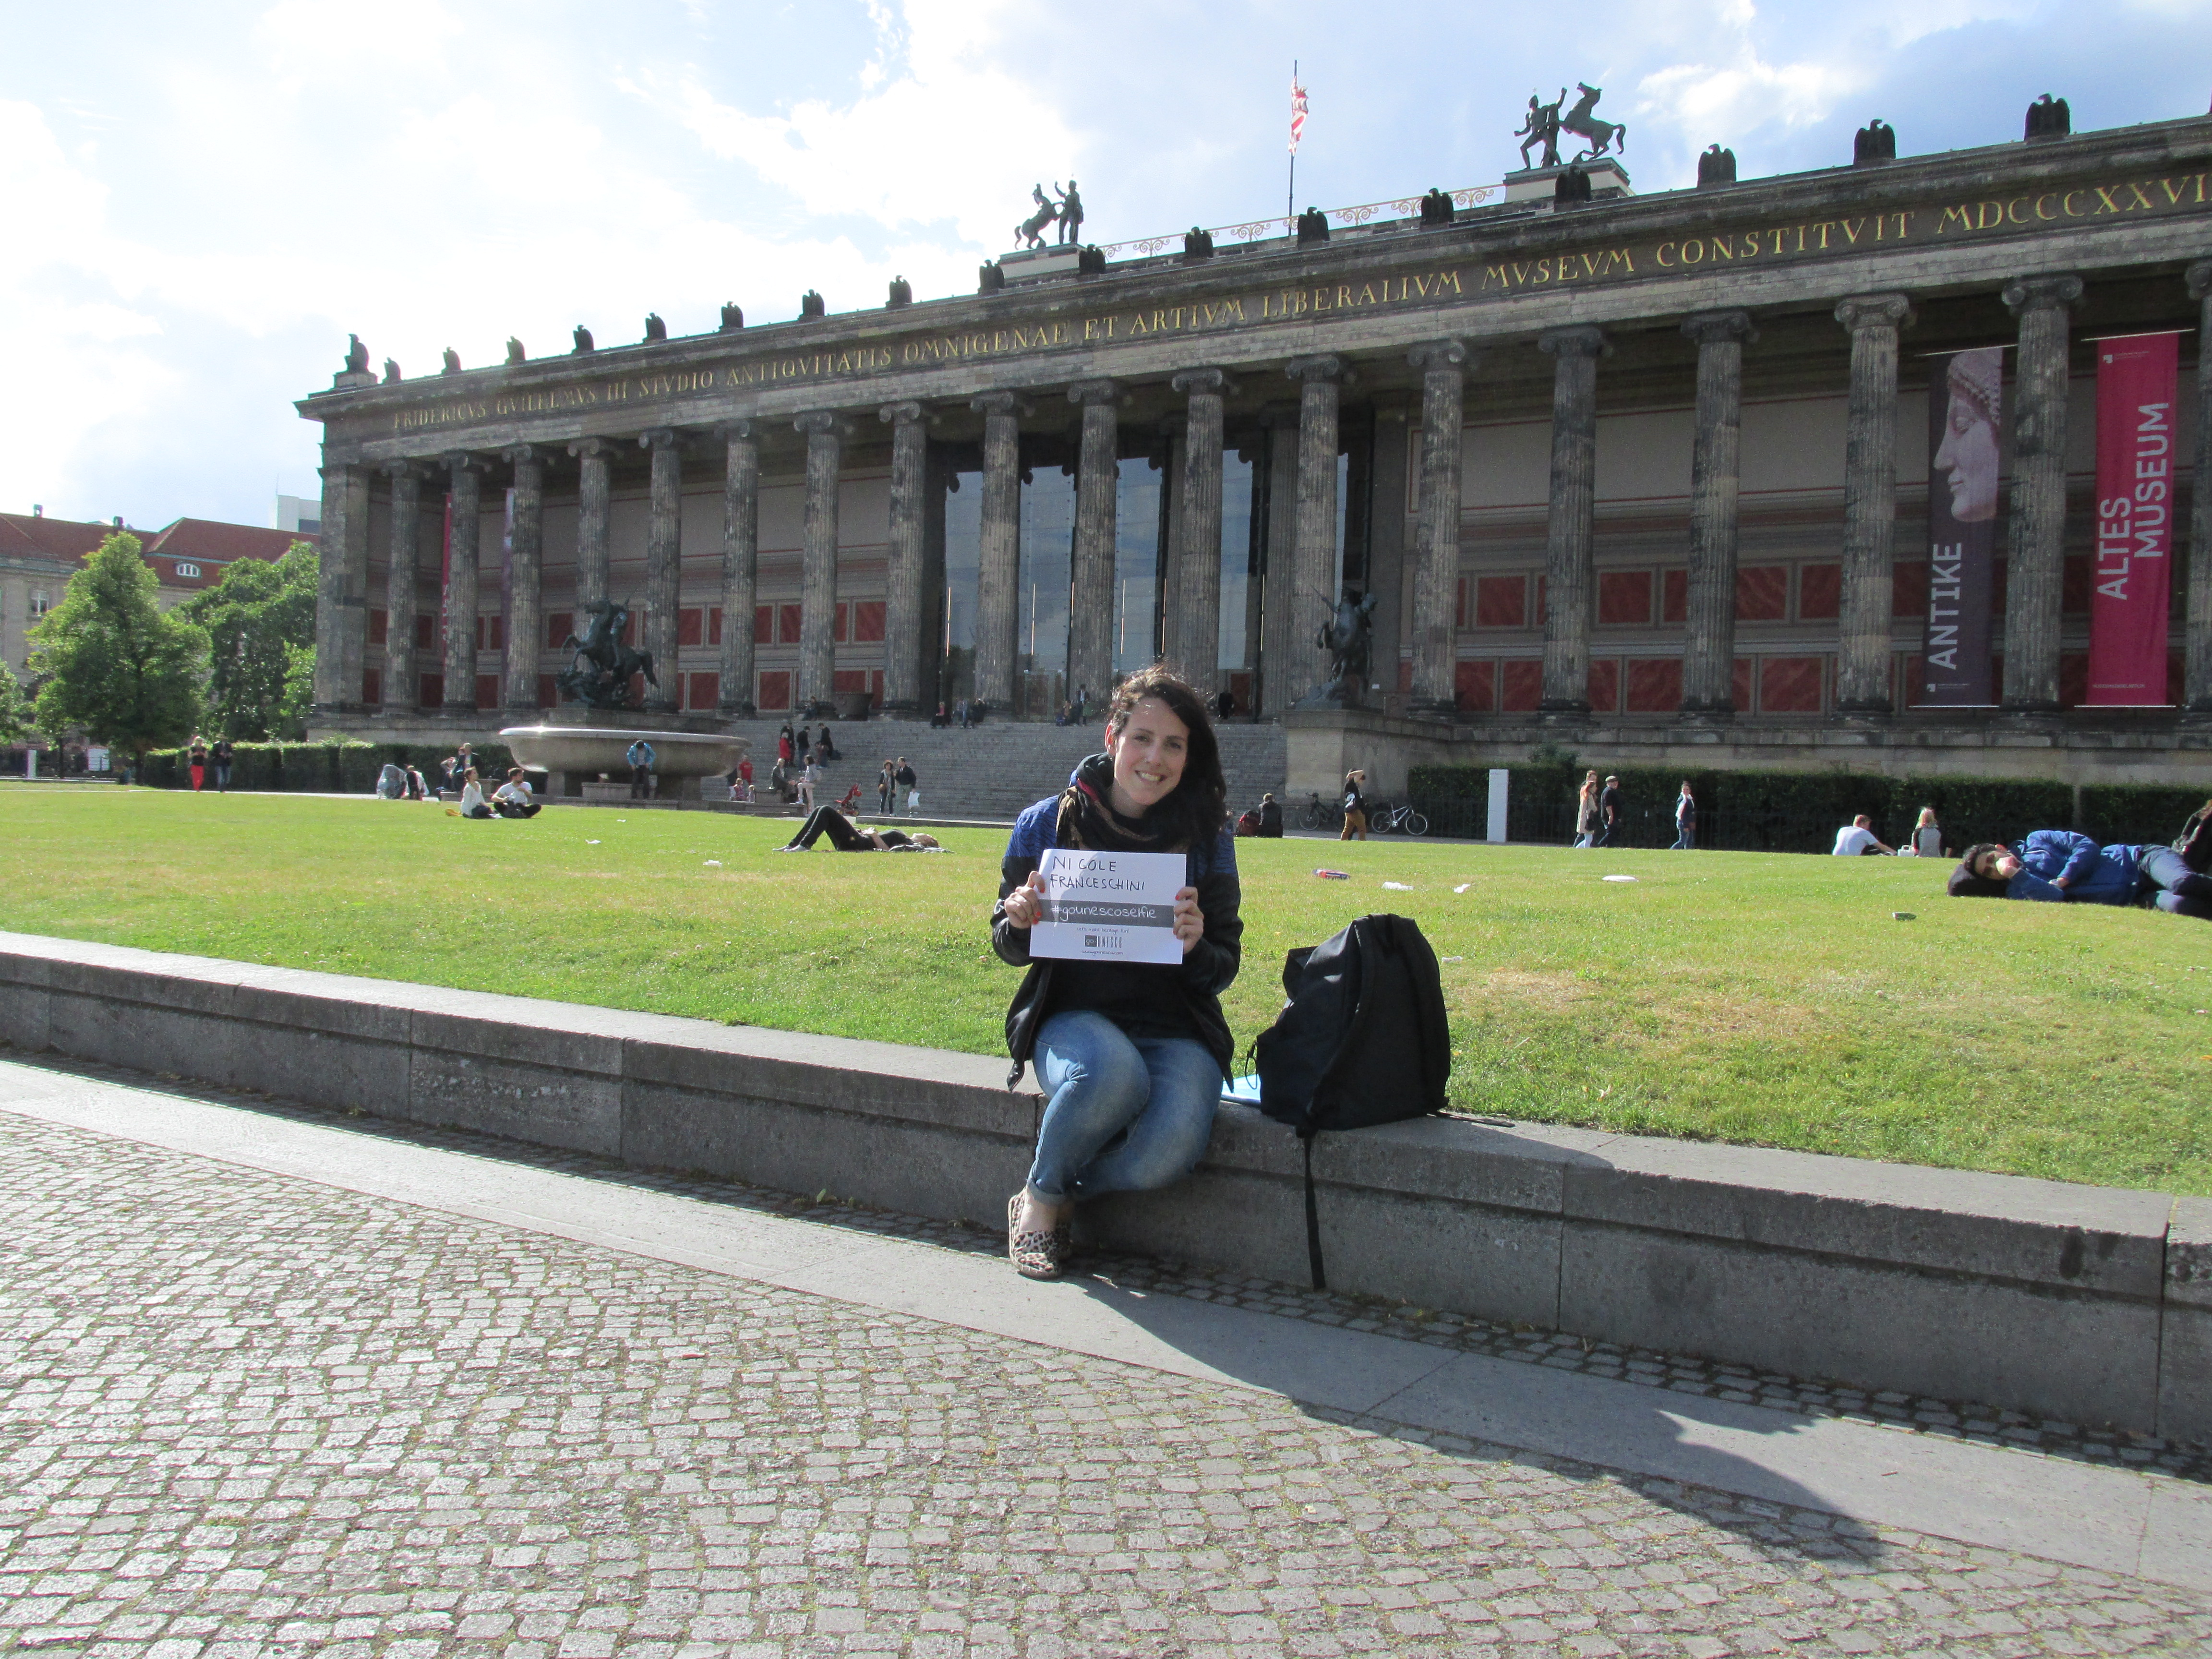 Museumsinsel - the cultural heart of Berlin!